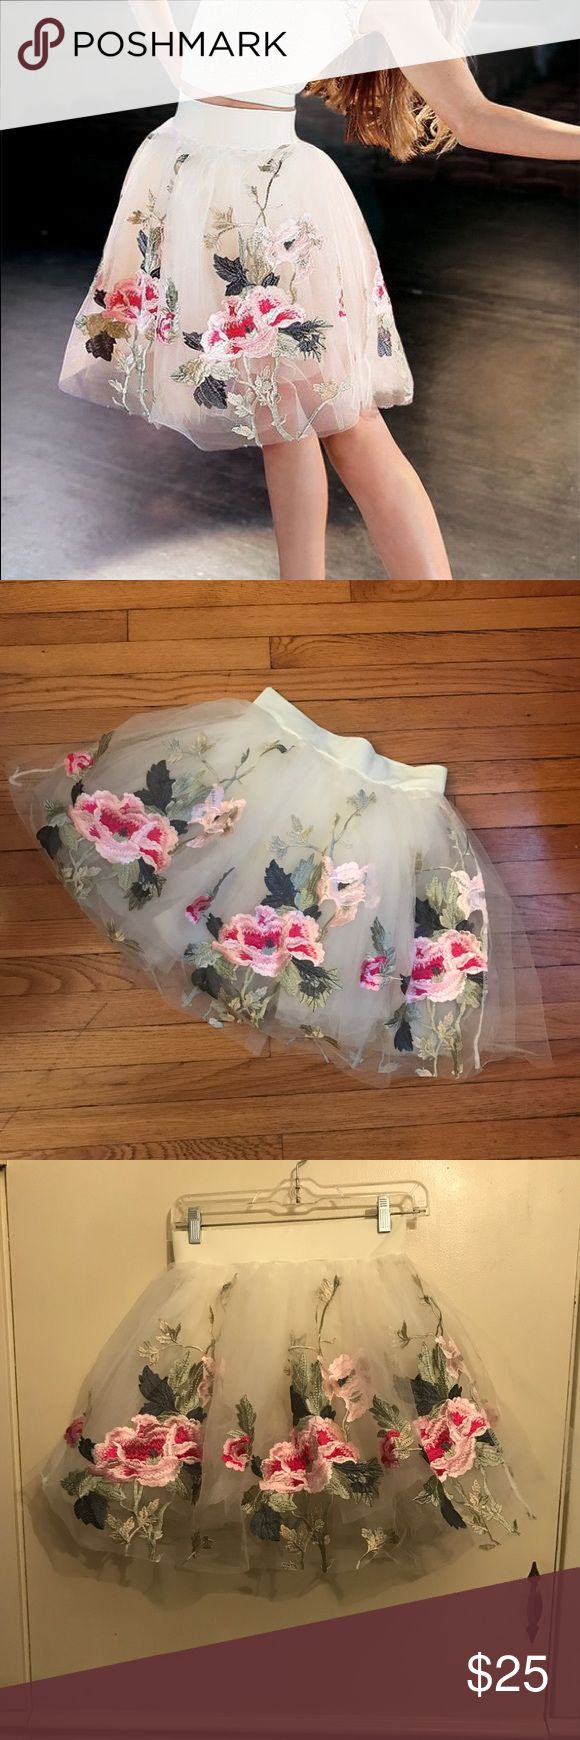 Weissman Dance Floral Appliqué Ivory Tutu Sz Small This tutu is beyond stunning! This ivory tulle tutu from Weissman Dance is covered in beautiful rose pink floral appliqués. The tutu has a spandex waist band and built in ivory brief. Perfect for a costume or styled for a party! I would pair it with a tank and your favorite leather jacket for an edgy look or a cashmere cardigan and pearls for something demure. New without tags. Measures 13 inches across the waist with a couple of inches of…